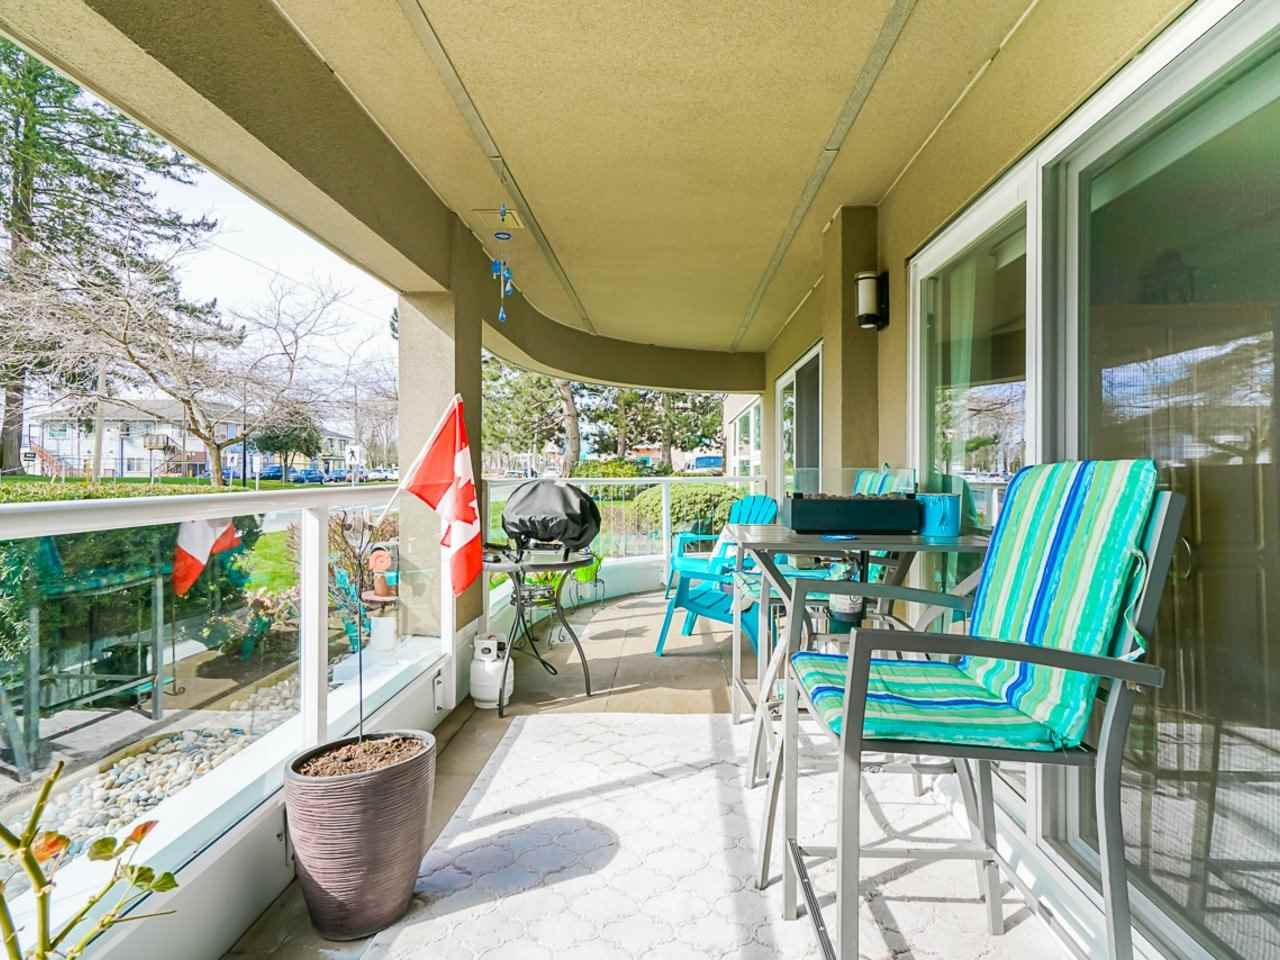 107 15809 MARINE DRIVE - White Rock Apartment/Condo for sale, 2 Bedrooms (R2553511) - #1